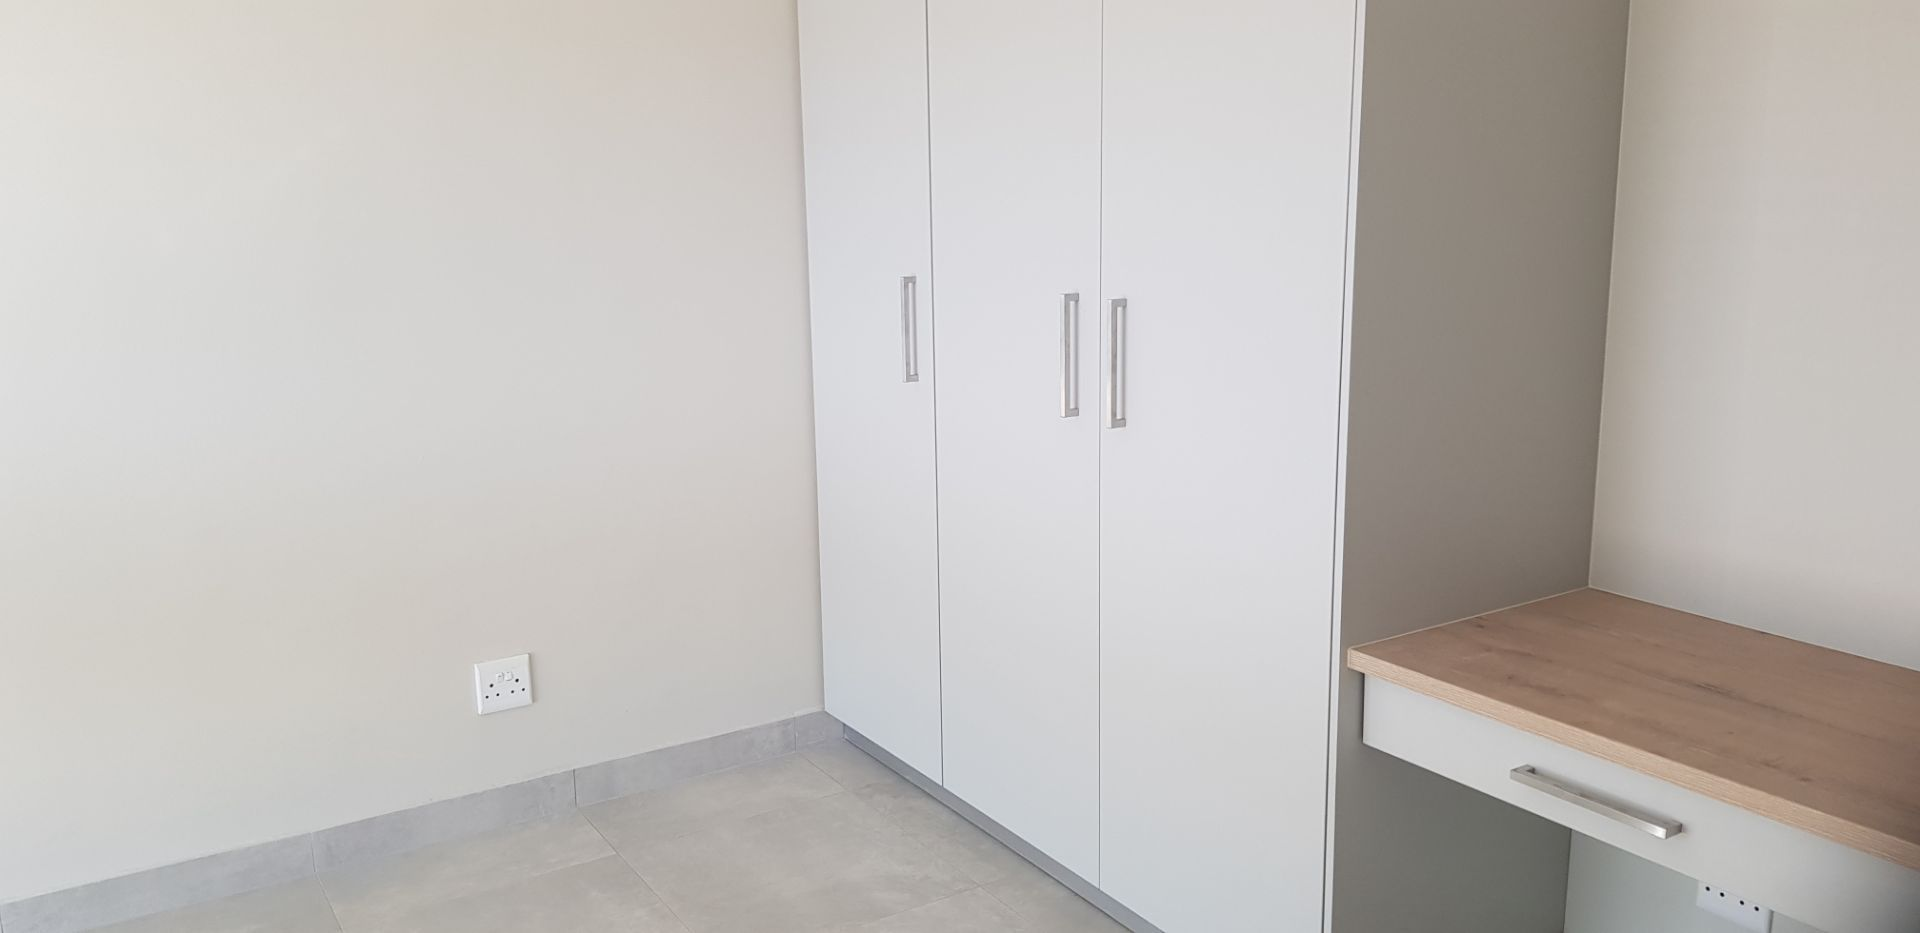 House in Lifestyle Estate - 20190712_111603.jpg